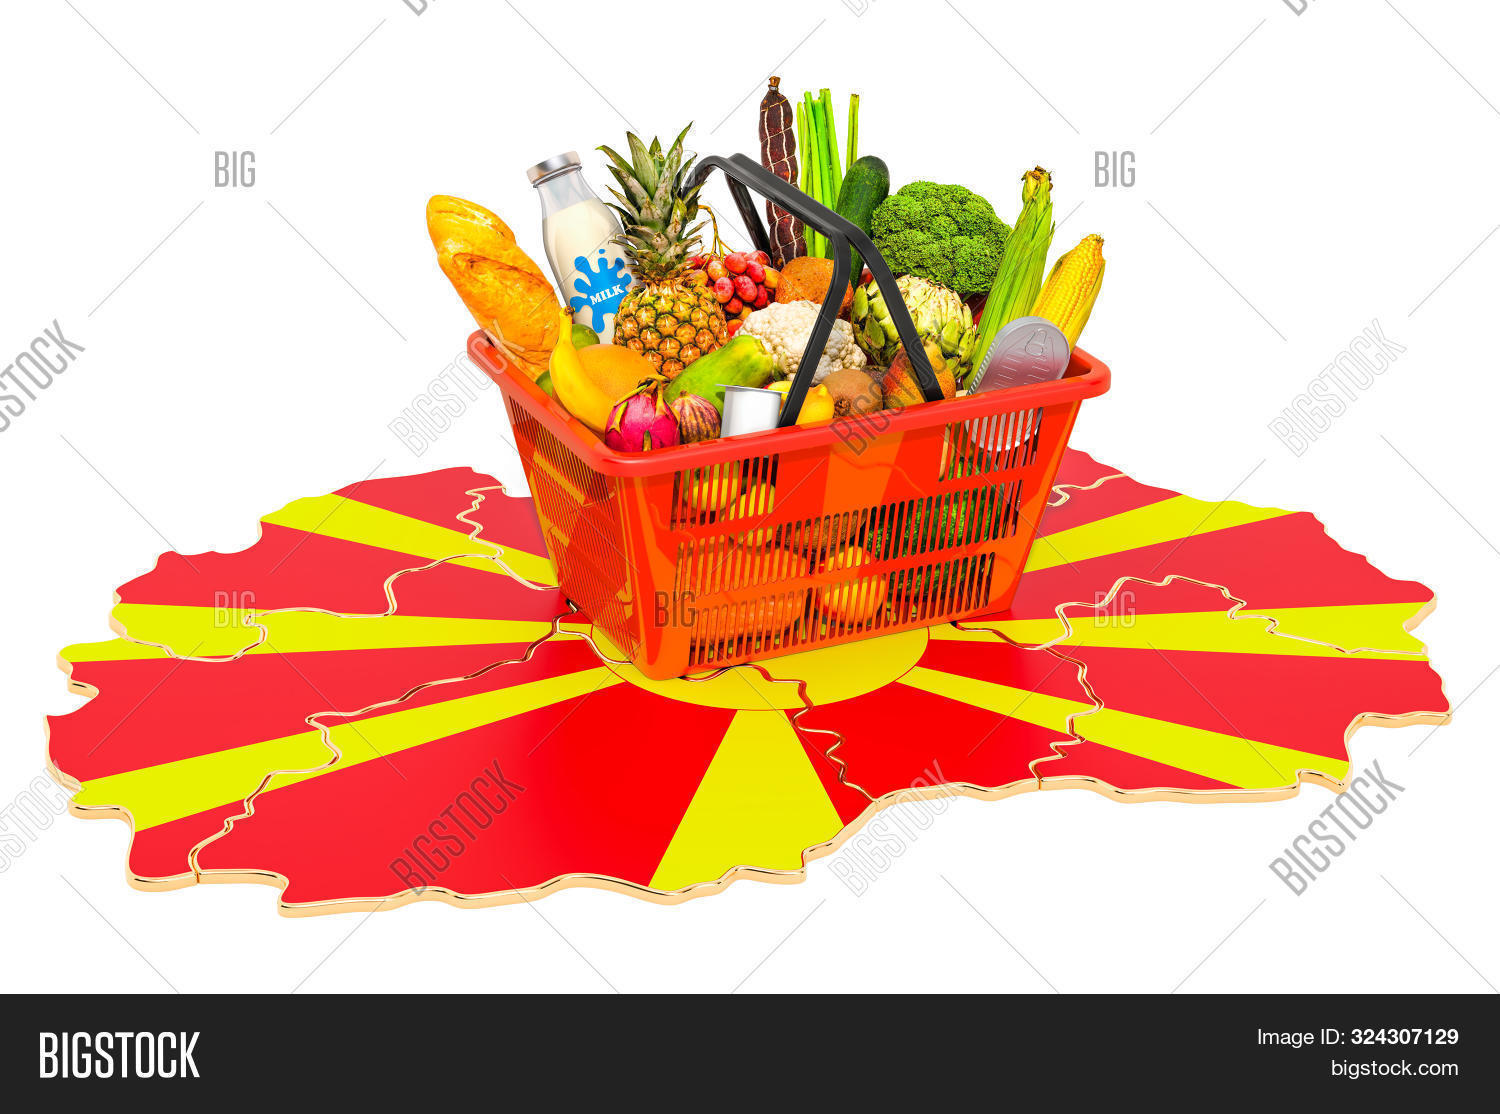 Market Basket Or Purchasing Power In Macedonia Concept. Shopping Basket With Macedonian Map, 3d Rend